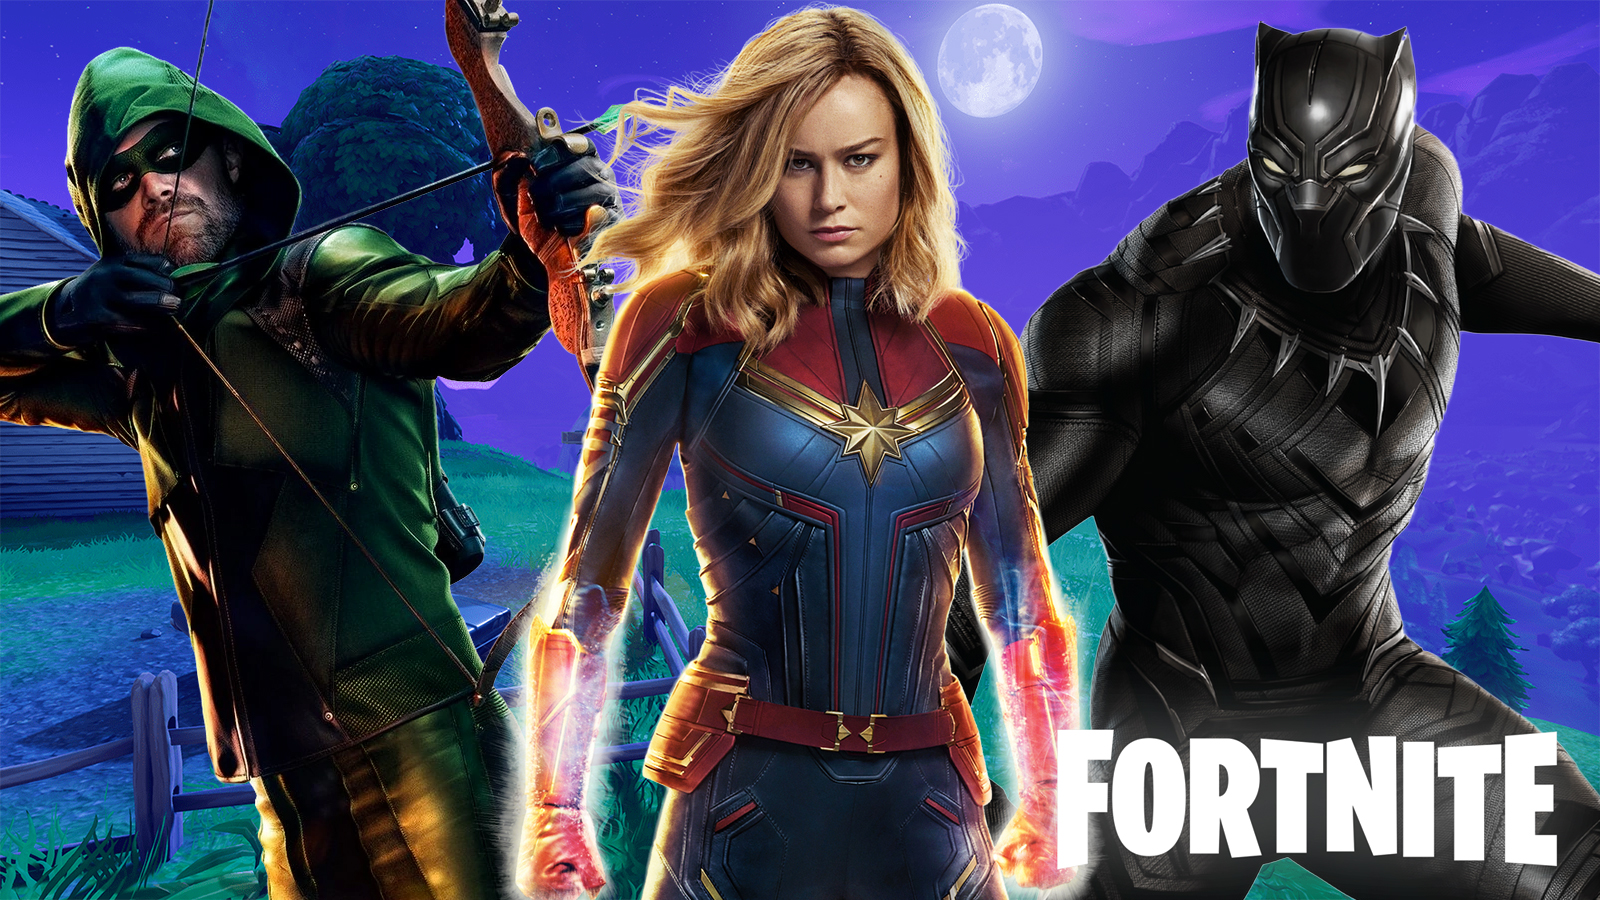 Fortnite Skins Leaked For Black Panther Captain Marvel Green Arrow Dexerto Marvel superhero black panther is finally coming to fortnite season 5, and it looks like he's. fortnite skins leaked for black panther